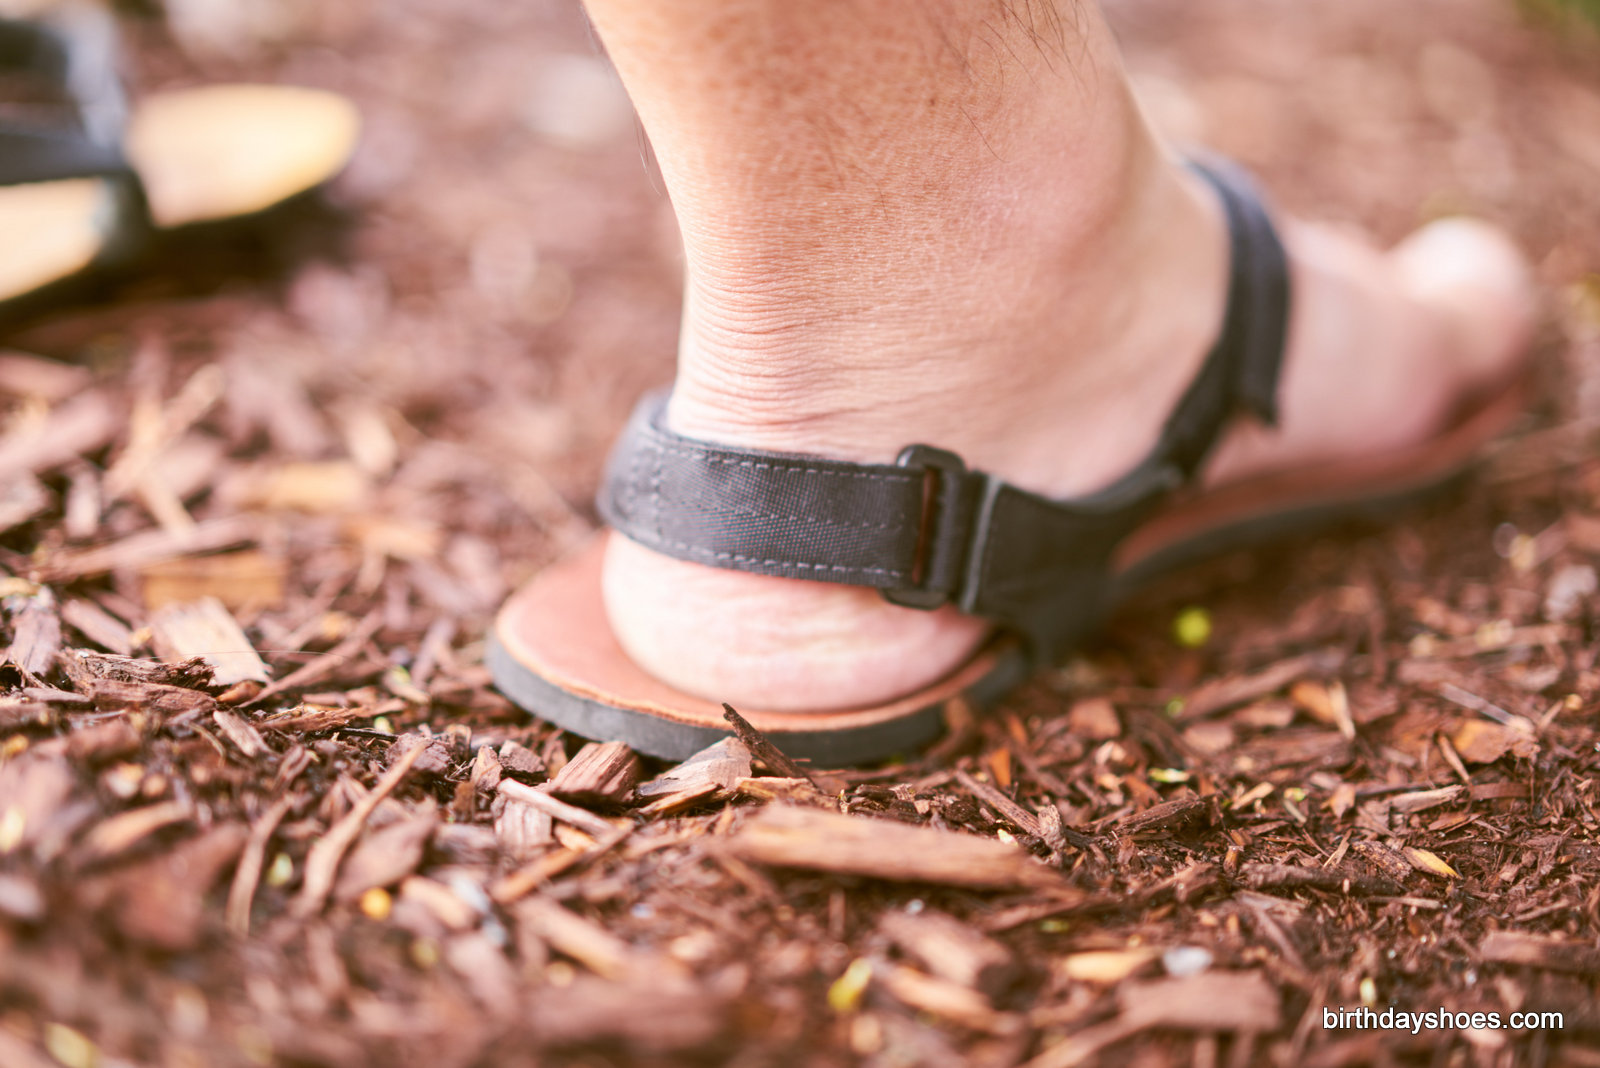 The new heel strap features a velcro adjustment for unparalleled, customized security when running or hiking